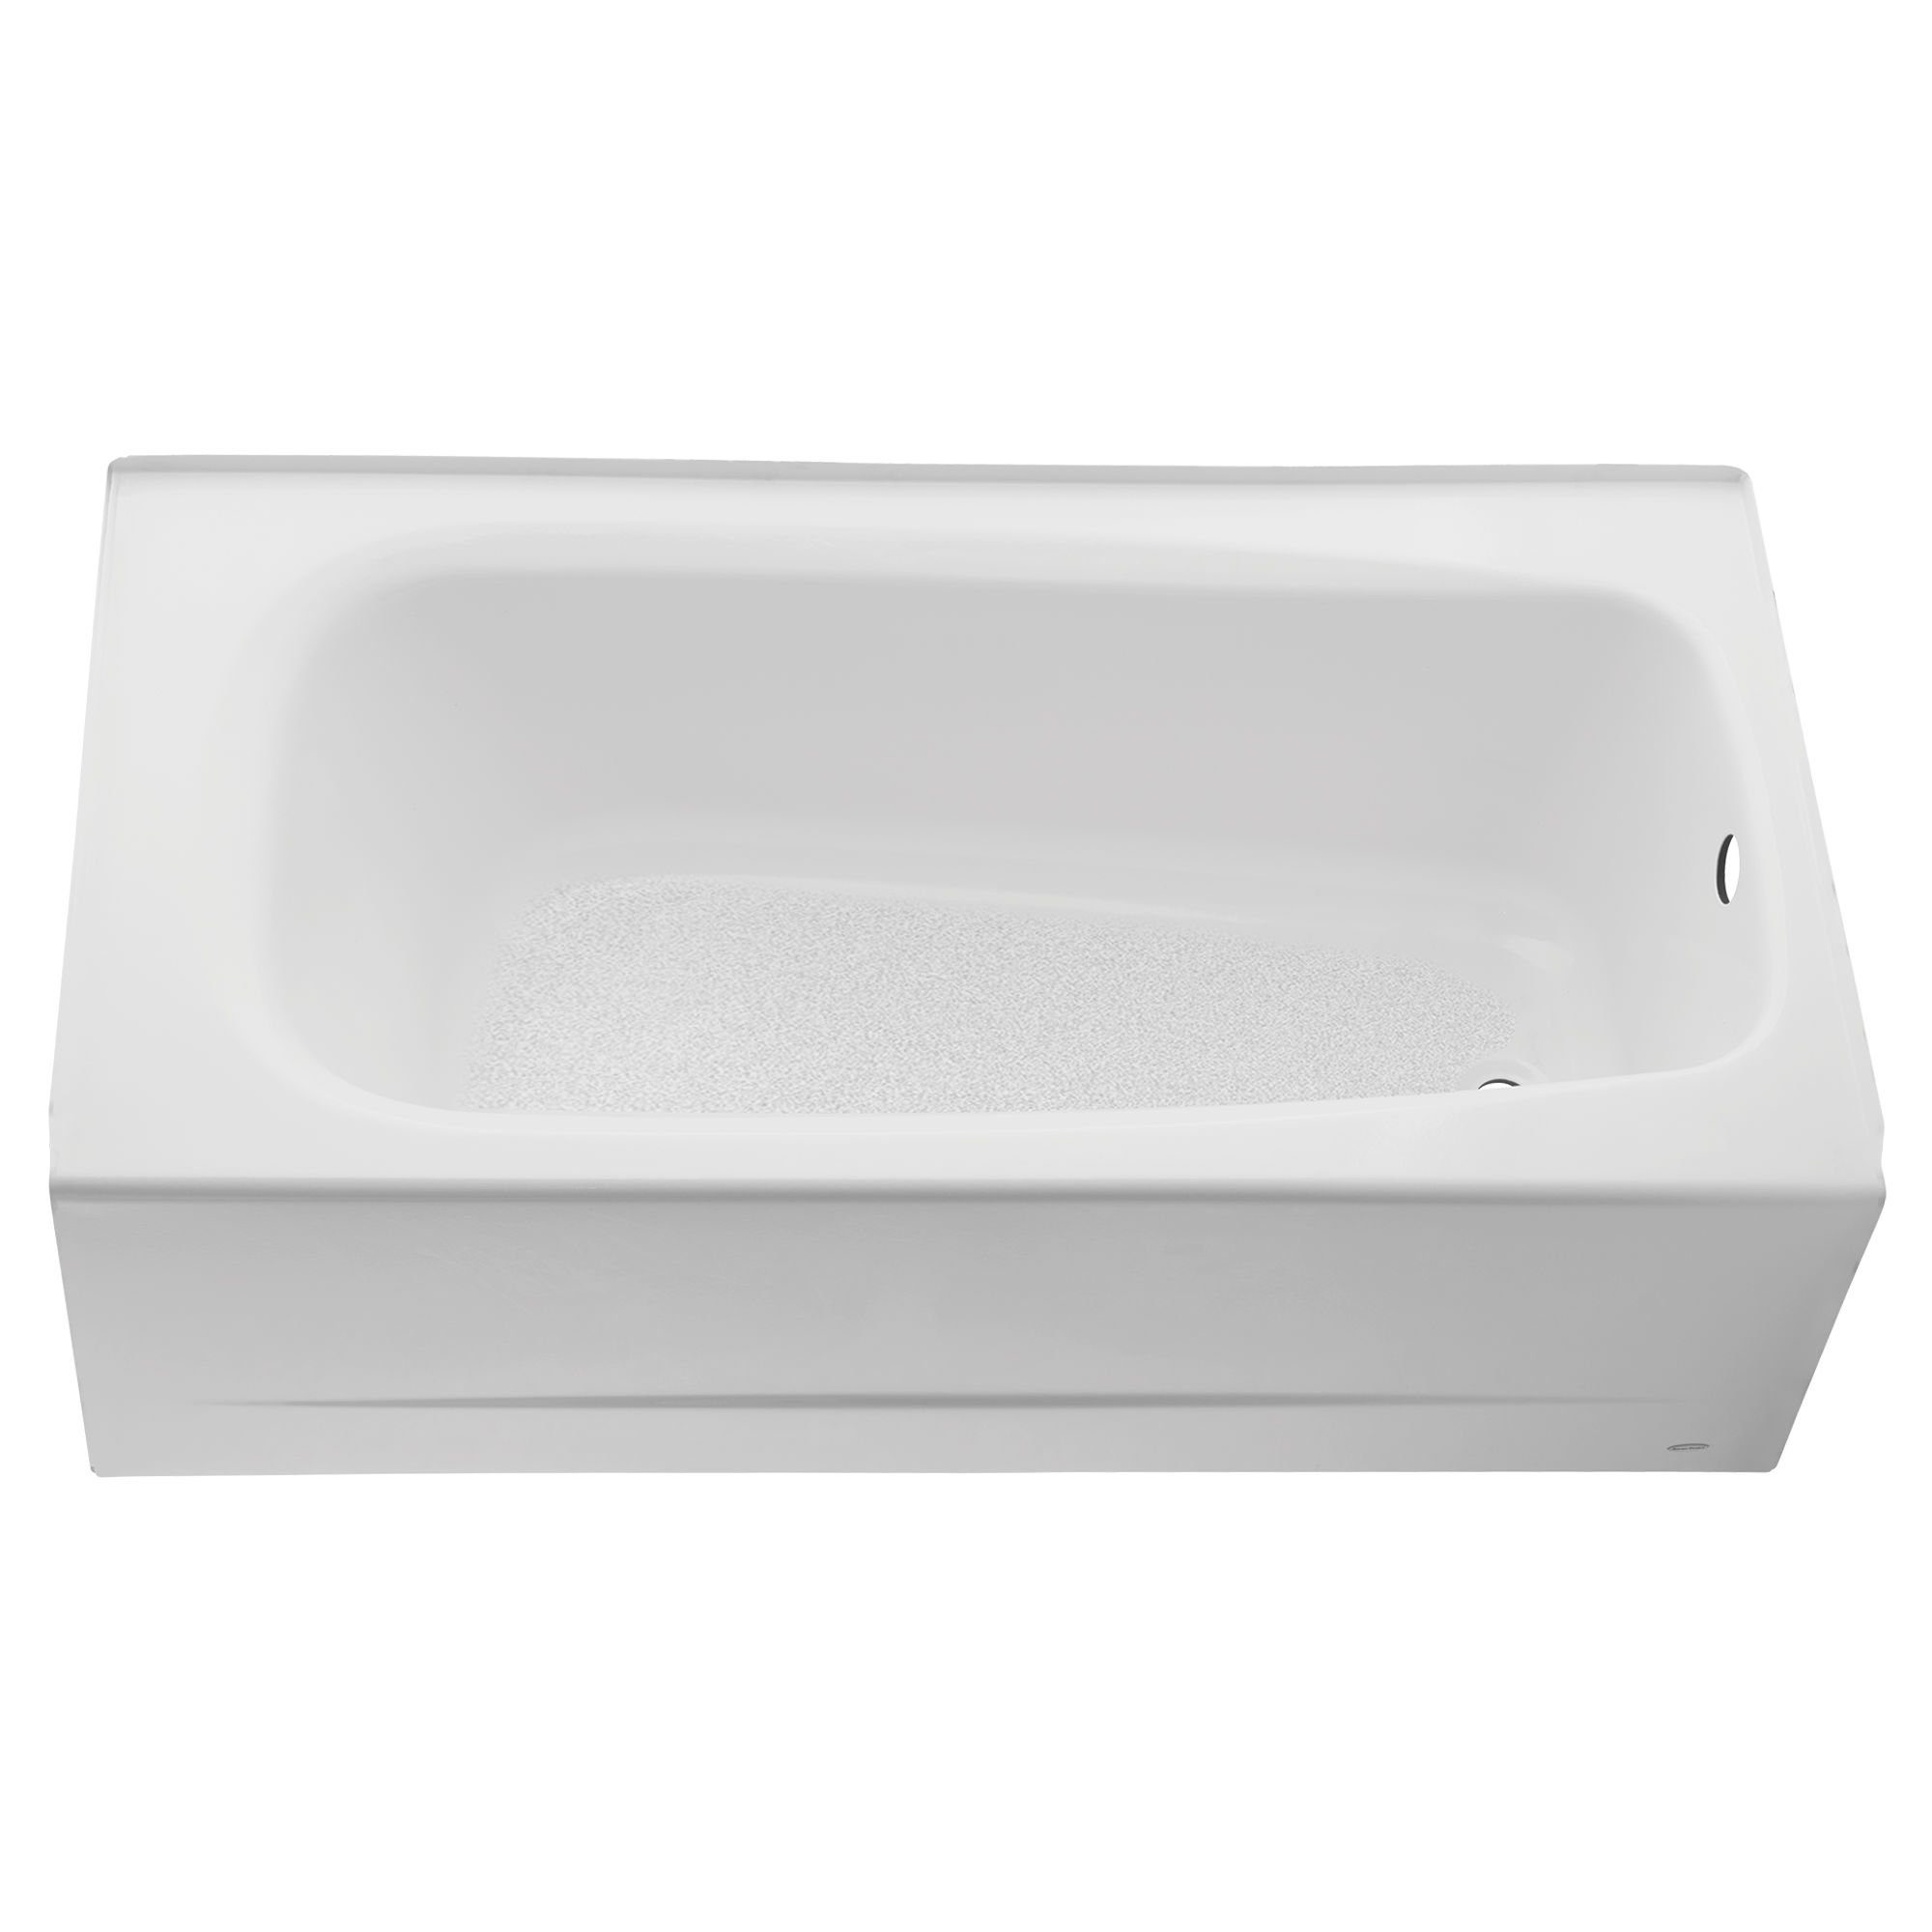 Best Rated In Bathtubs Amp Helpful Customer Reviews Amazon Com